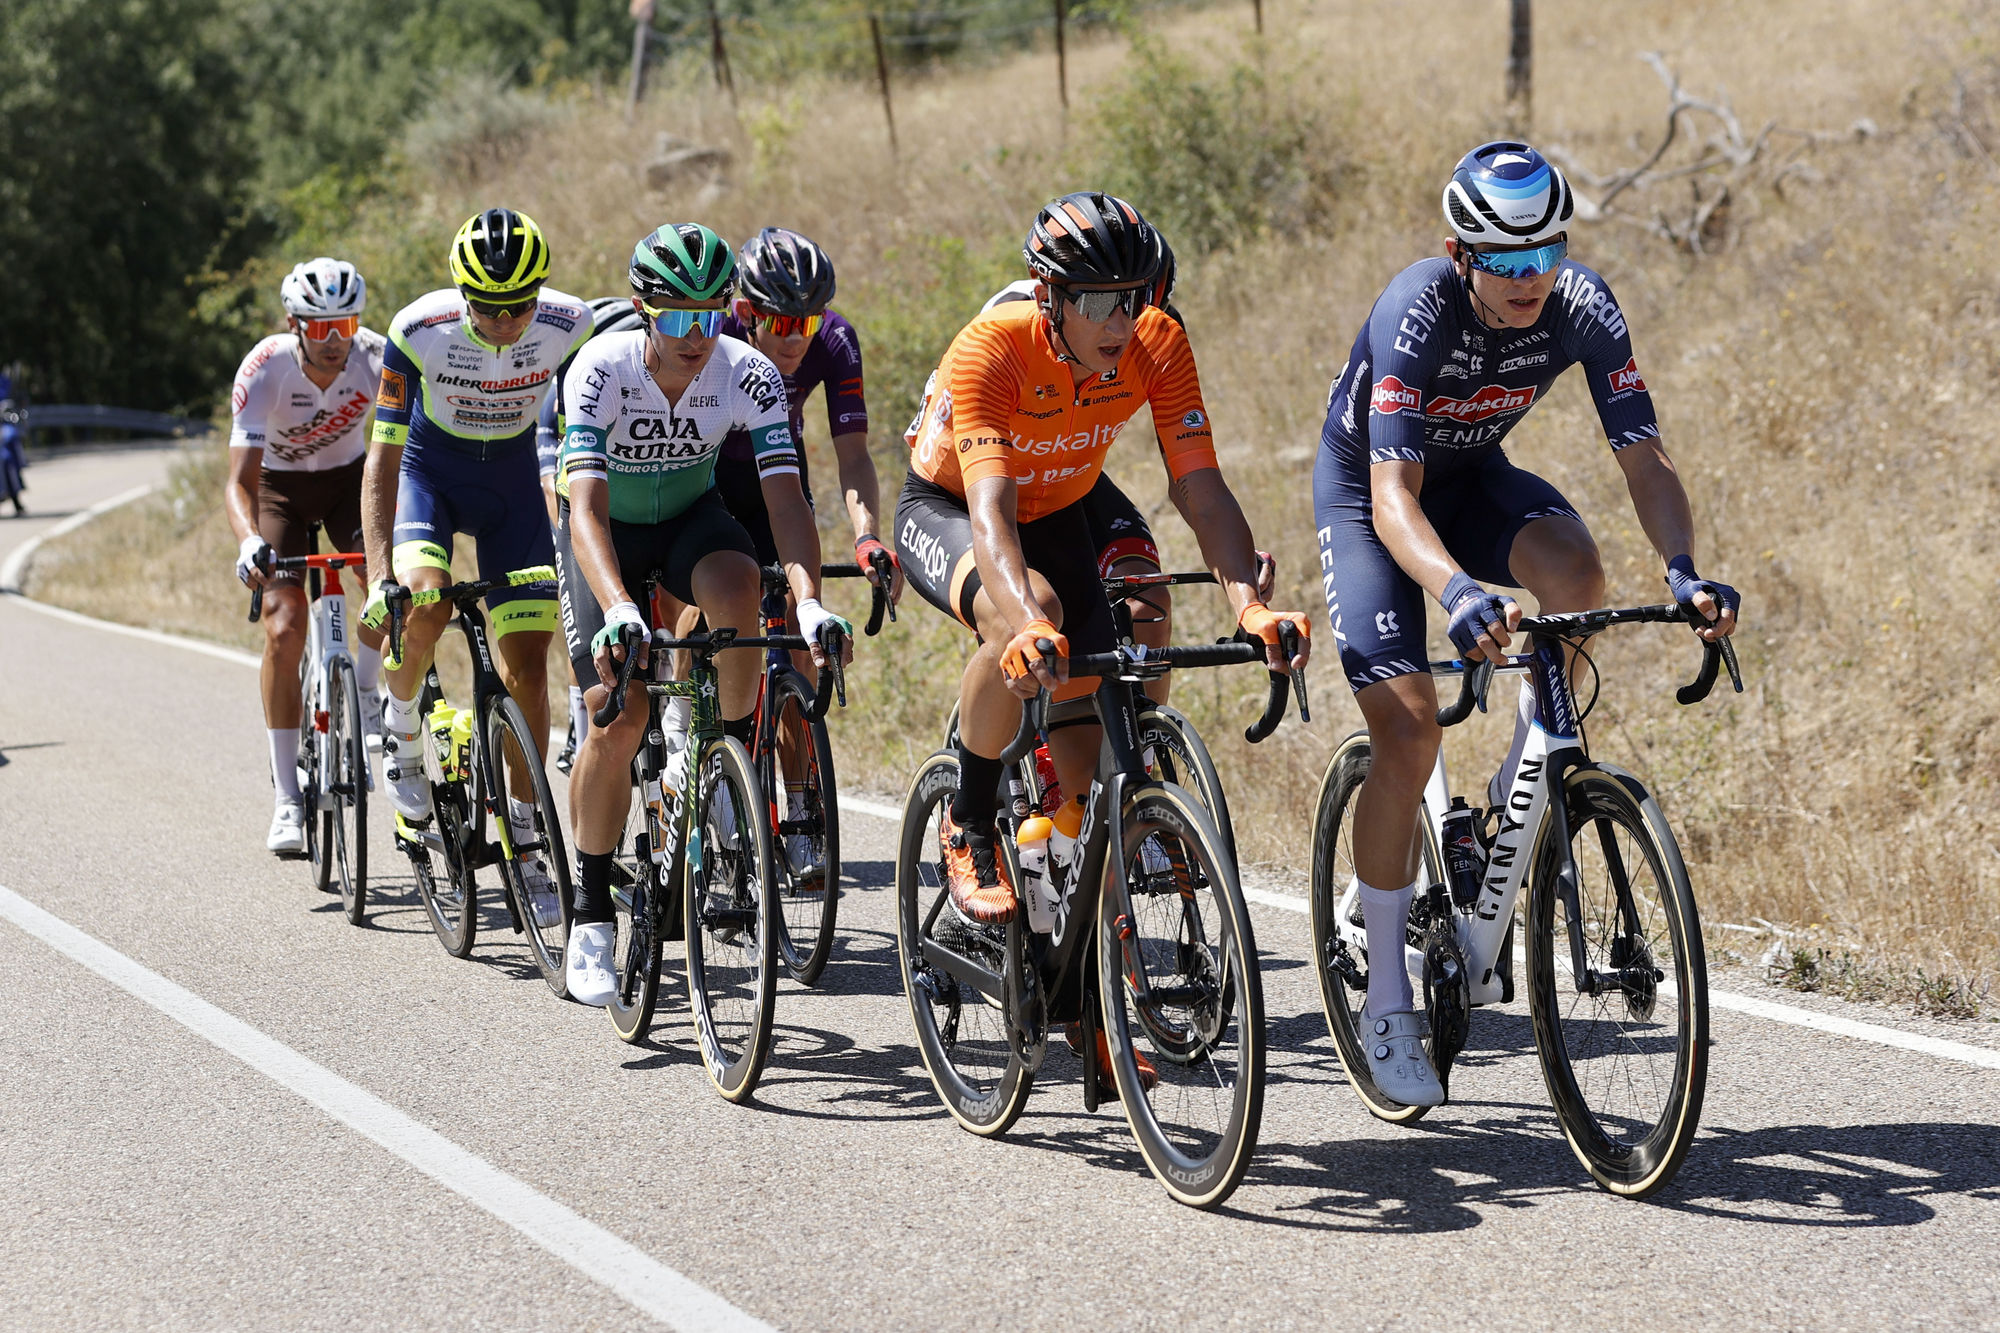 The break of stage 3 at the Vuelta a Espana